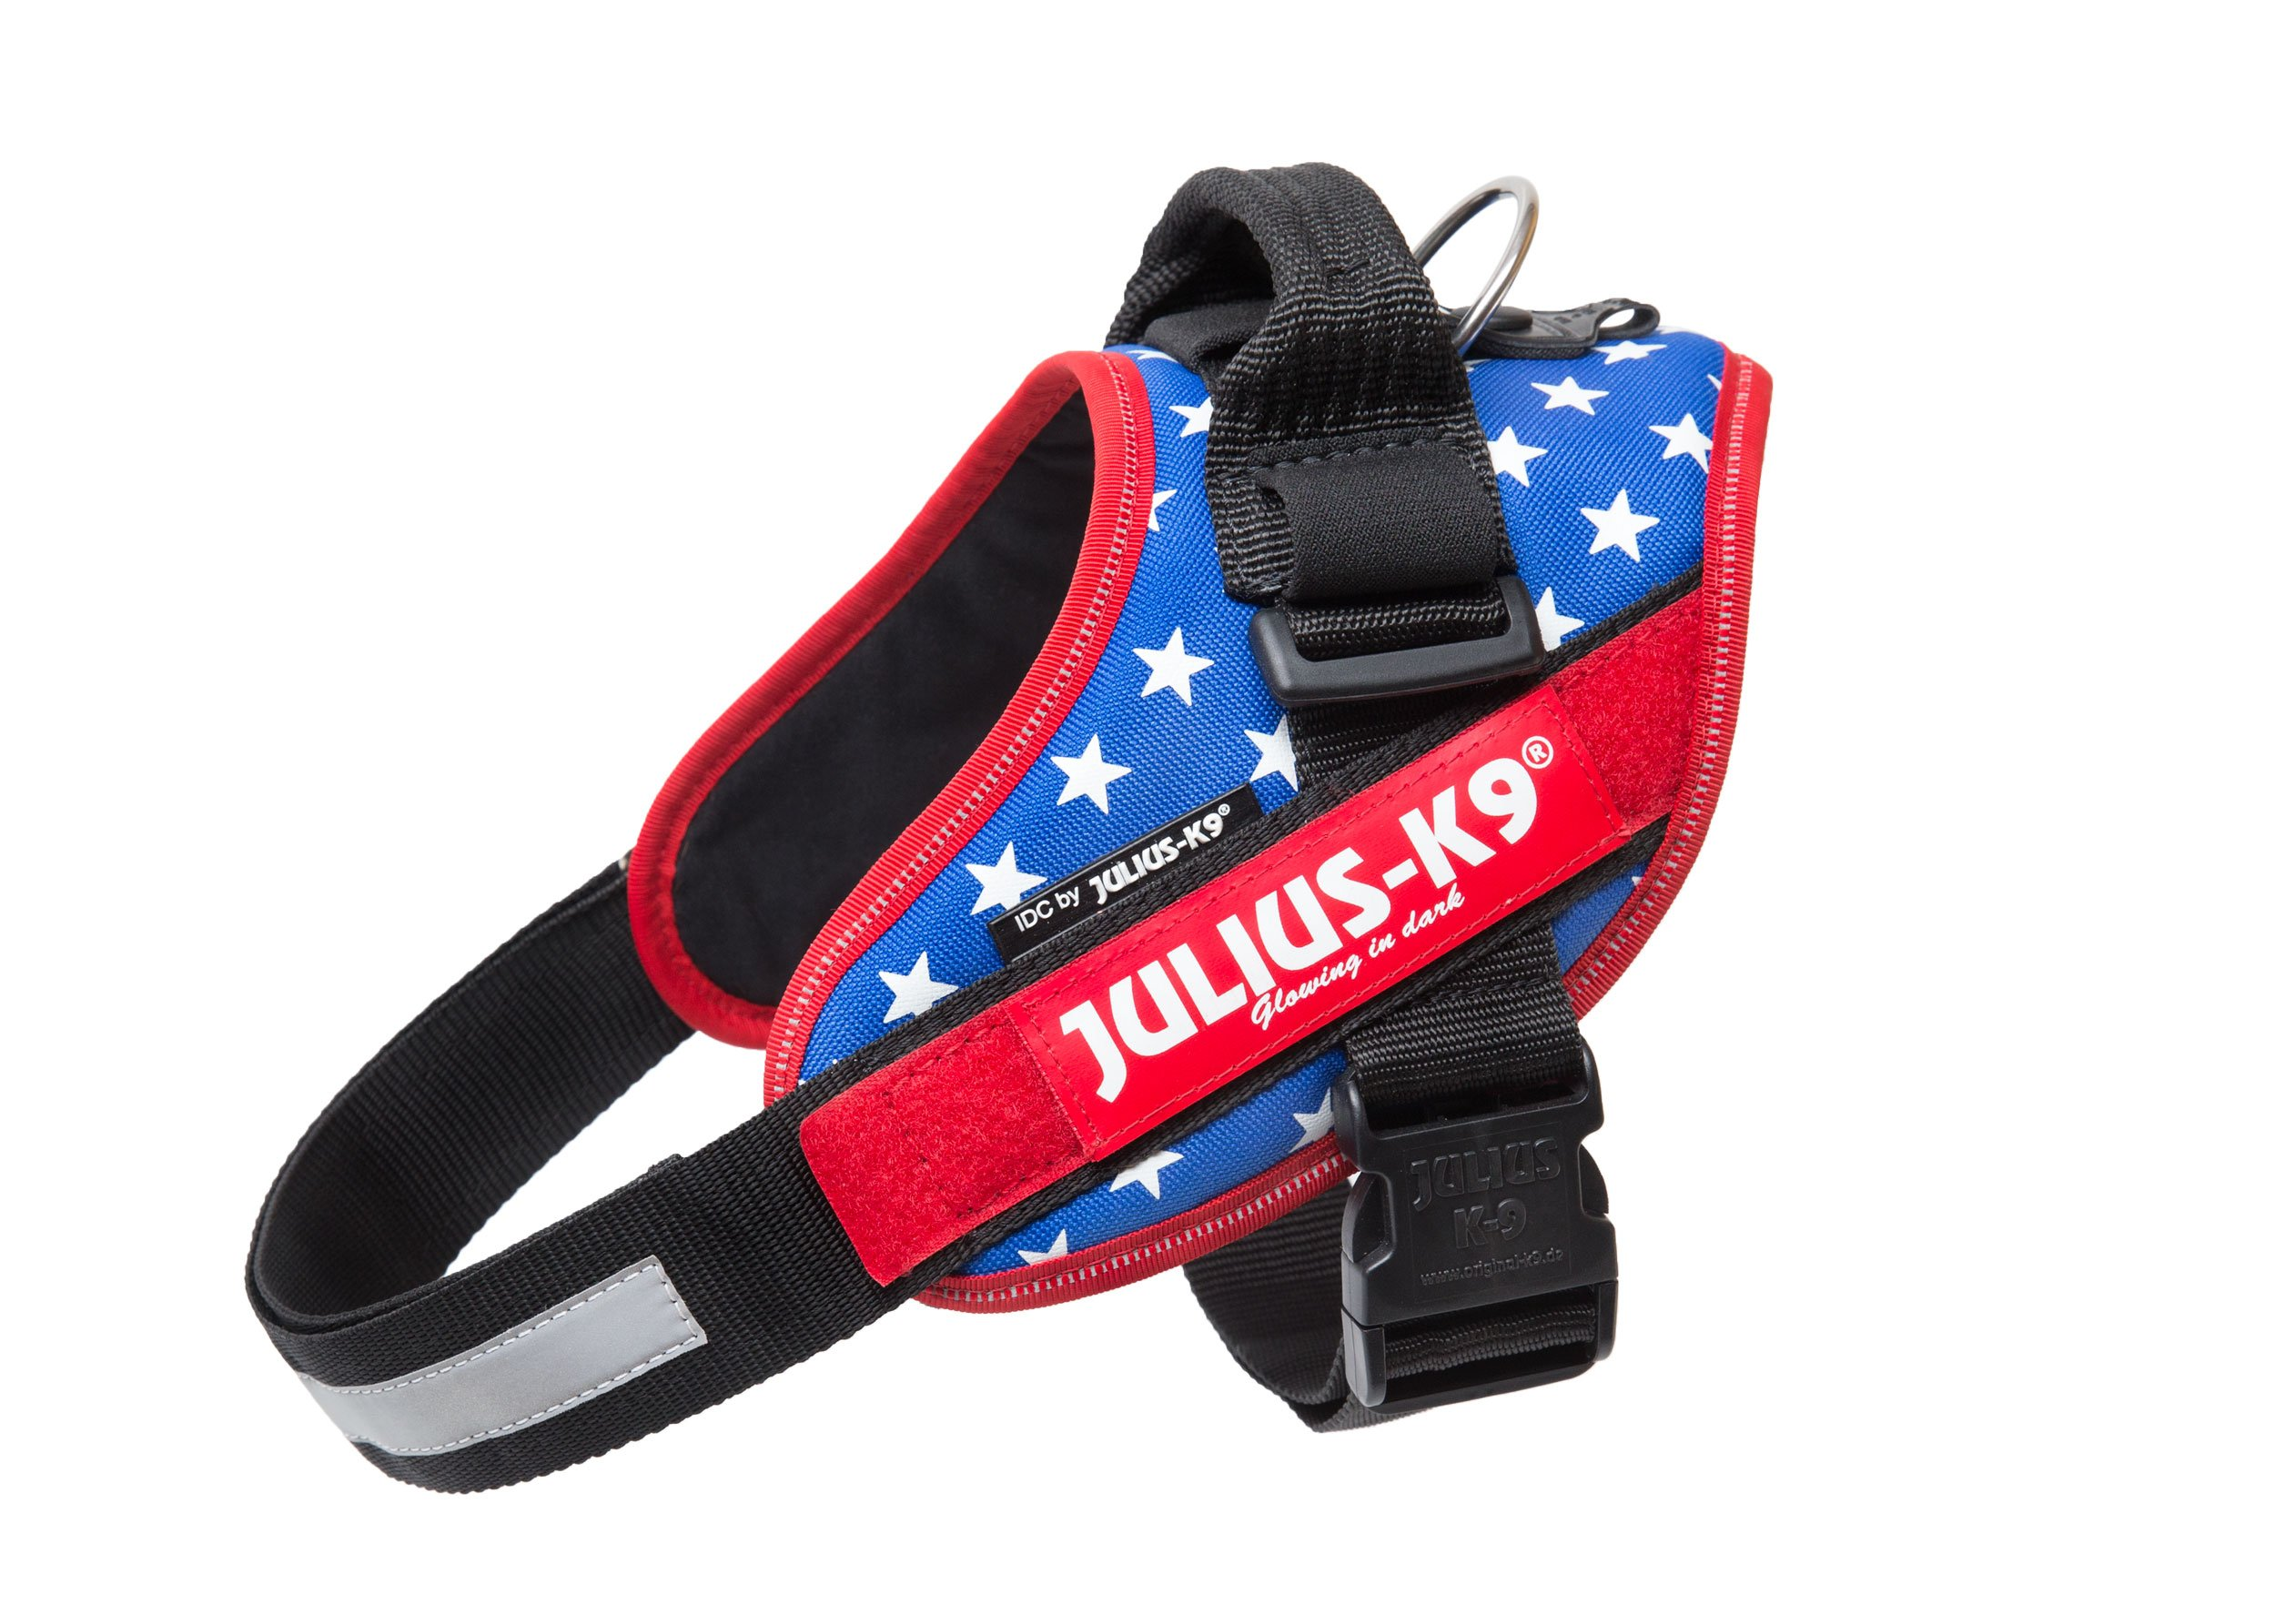 Julius-K9 IDC-Power Harness with Illuminated Velcro Patches, Ameri-Canis, Size: 0/58-76 cm/23-30''